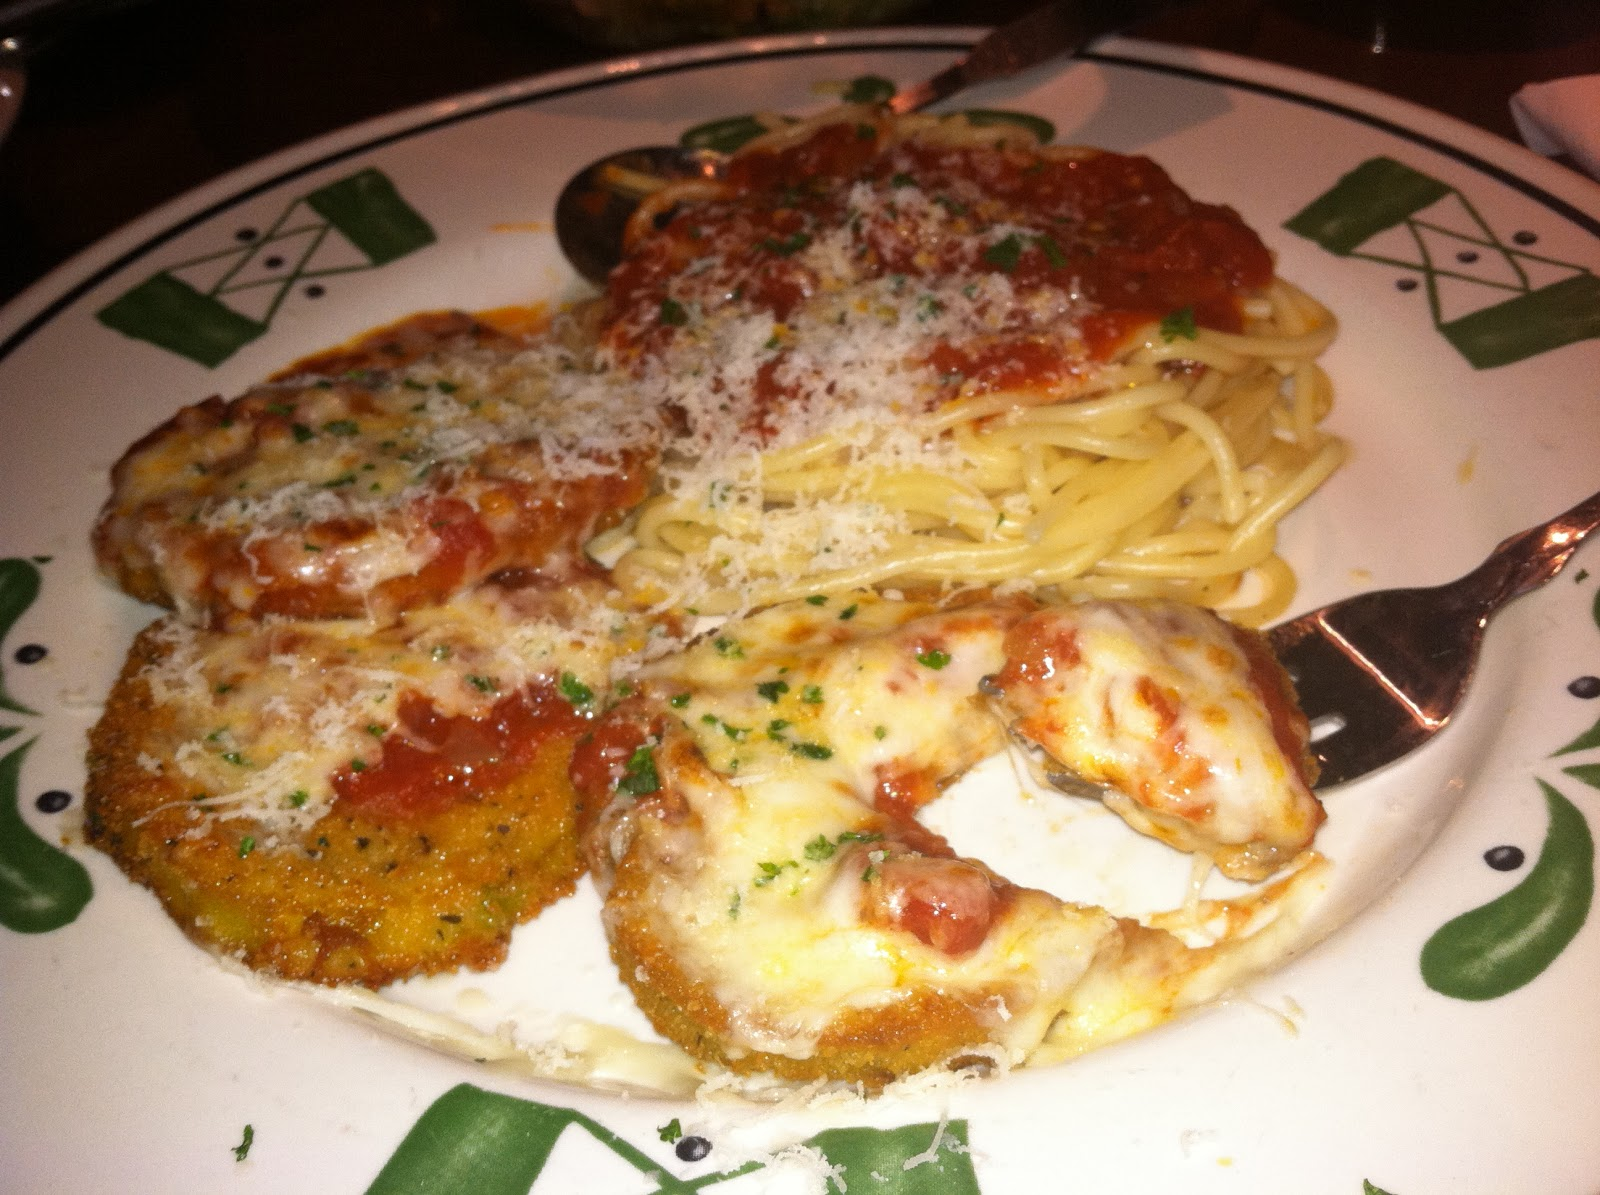 My Eggplant Parmesan at Olive Garden. It was outstanding. So far my ...